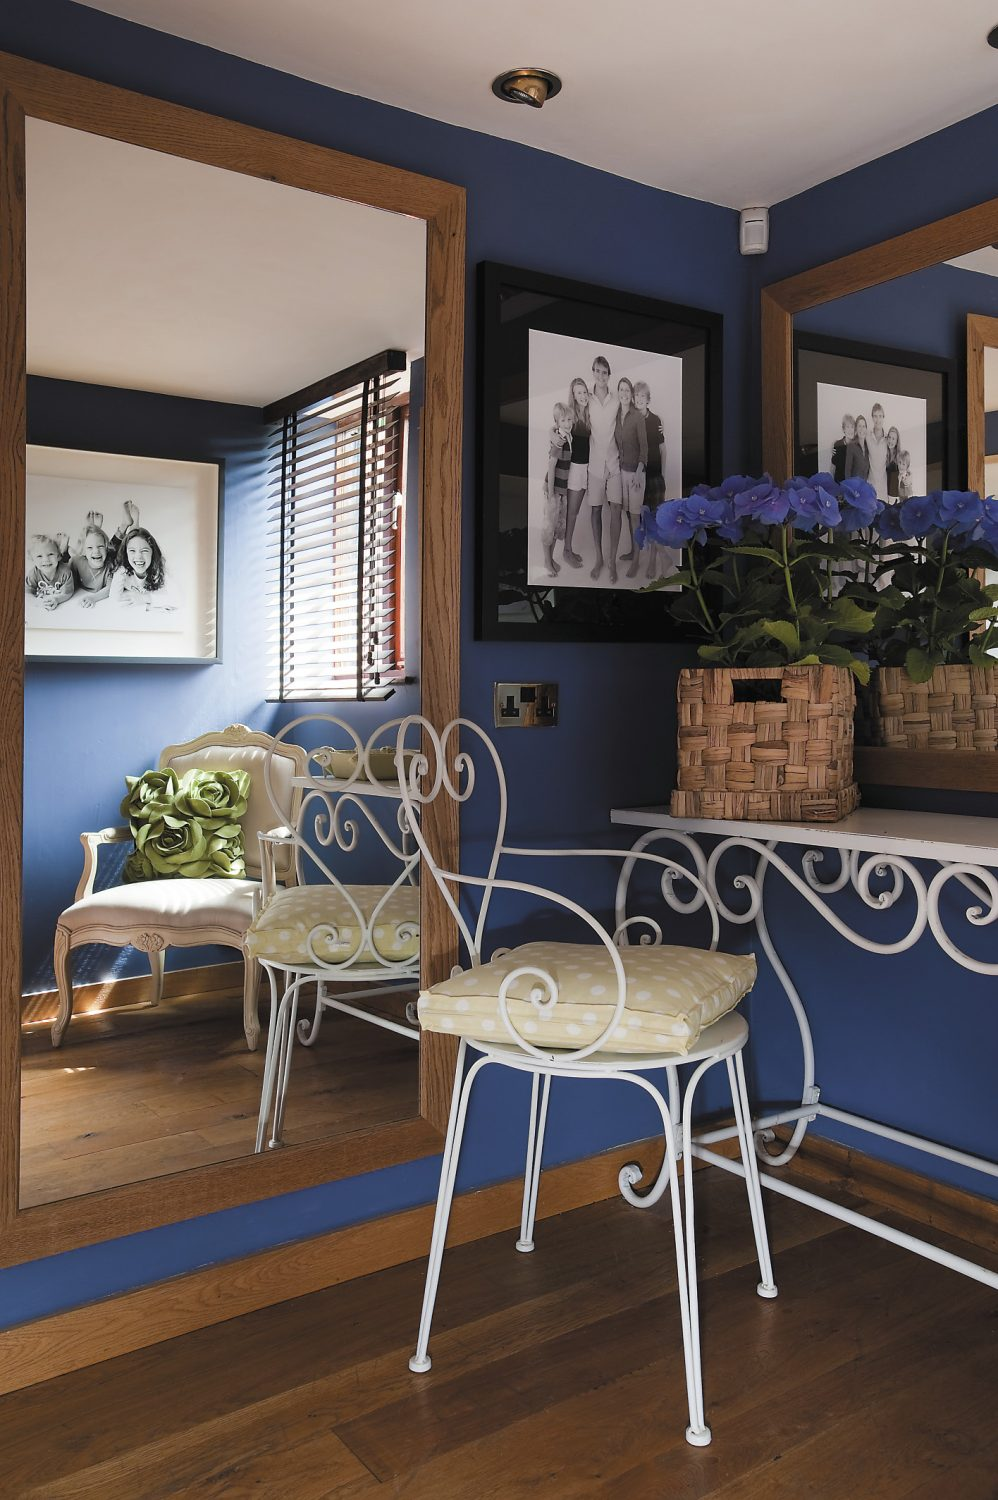 The walls of the dressing and sitting areas are painted rich reds and blues in contrast to the pure white of the workspace